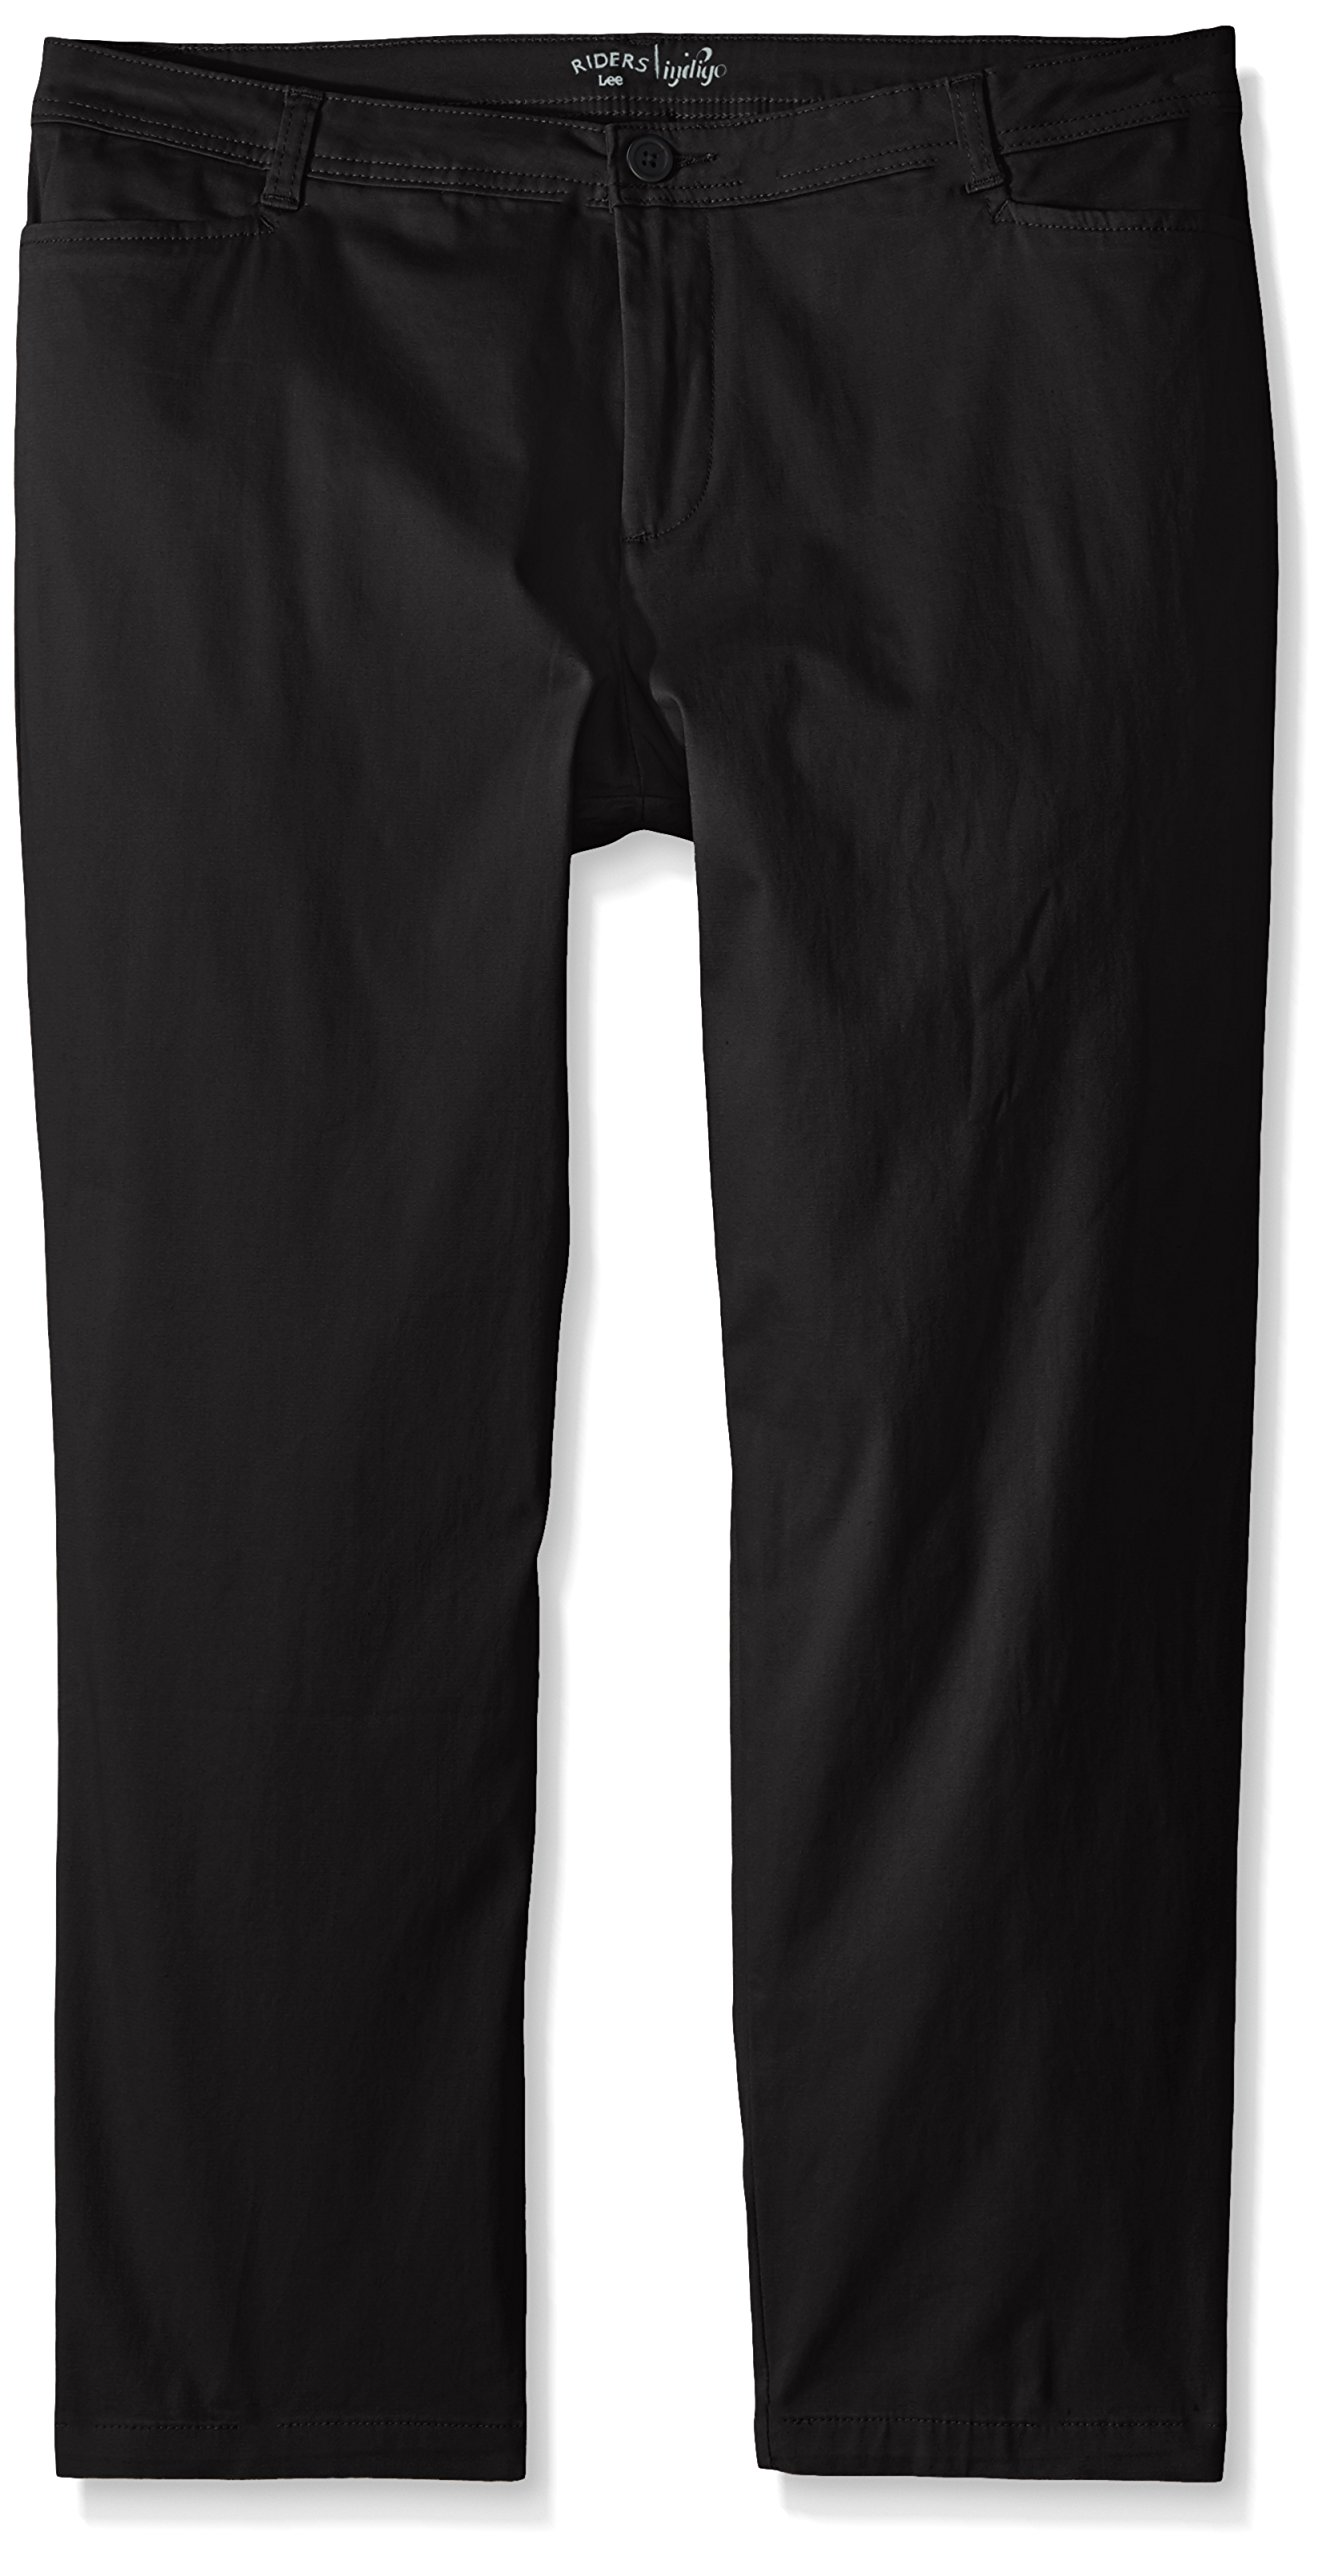 Riders by Lee Indigo Women's Petite-Plus-Size Straight Leg Casual Twill Pant, Black, 16W Petite